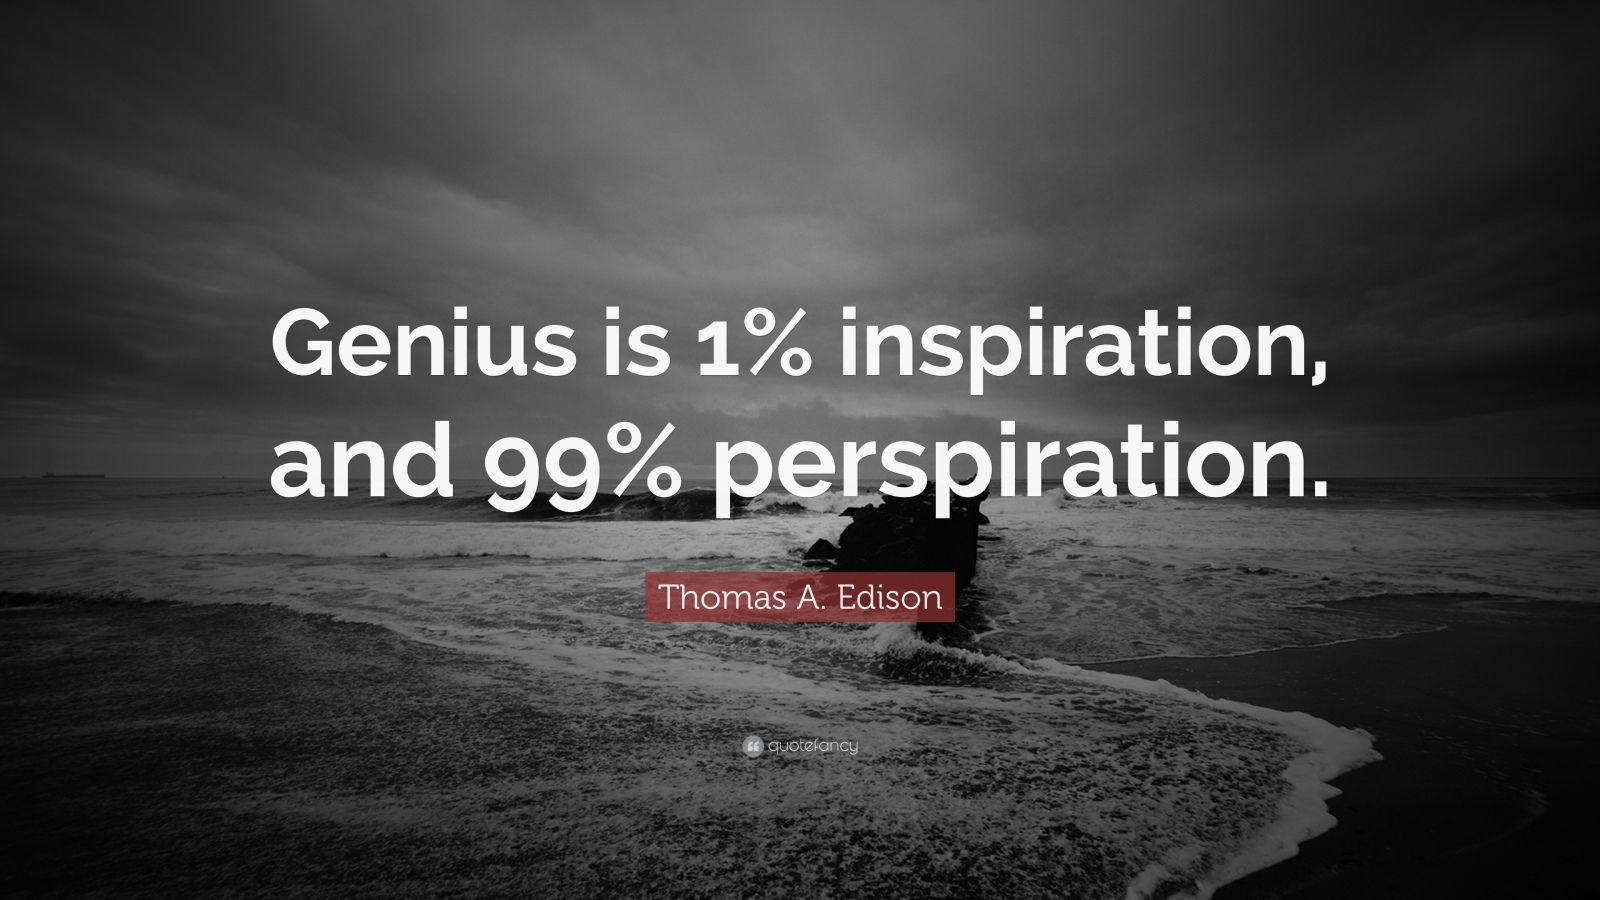 Essay on genius is 1 inspiration and 99 perspiration